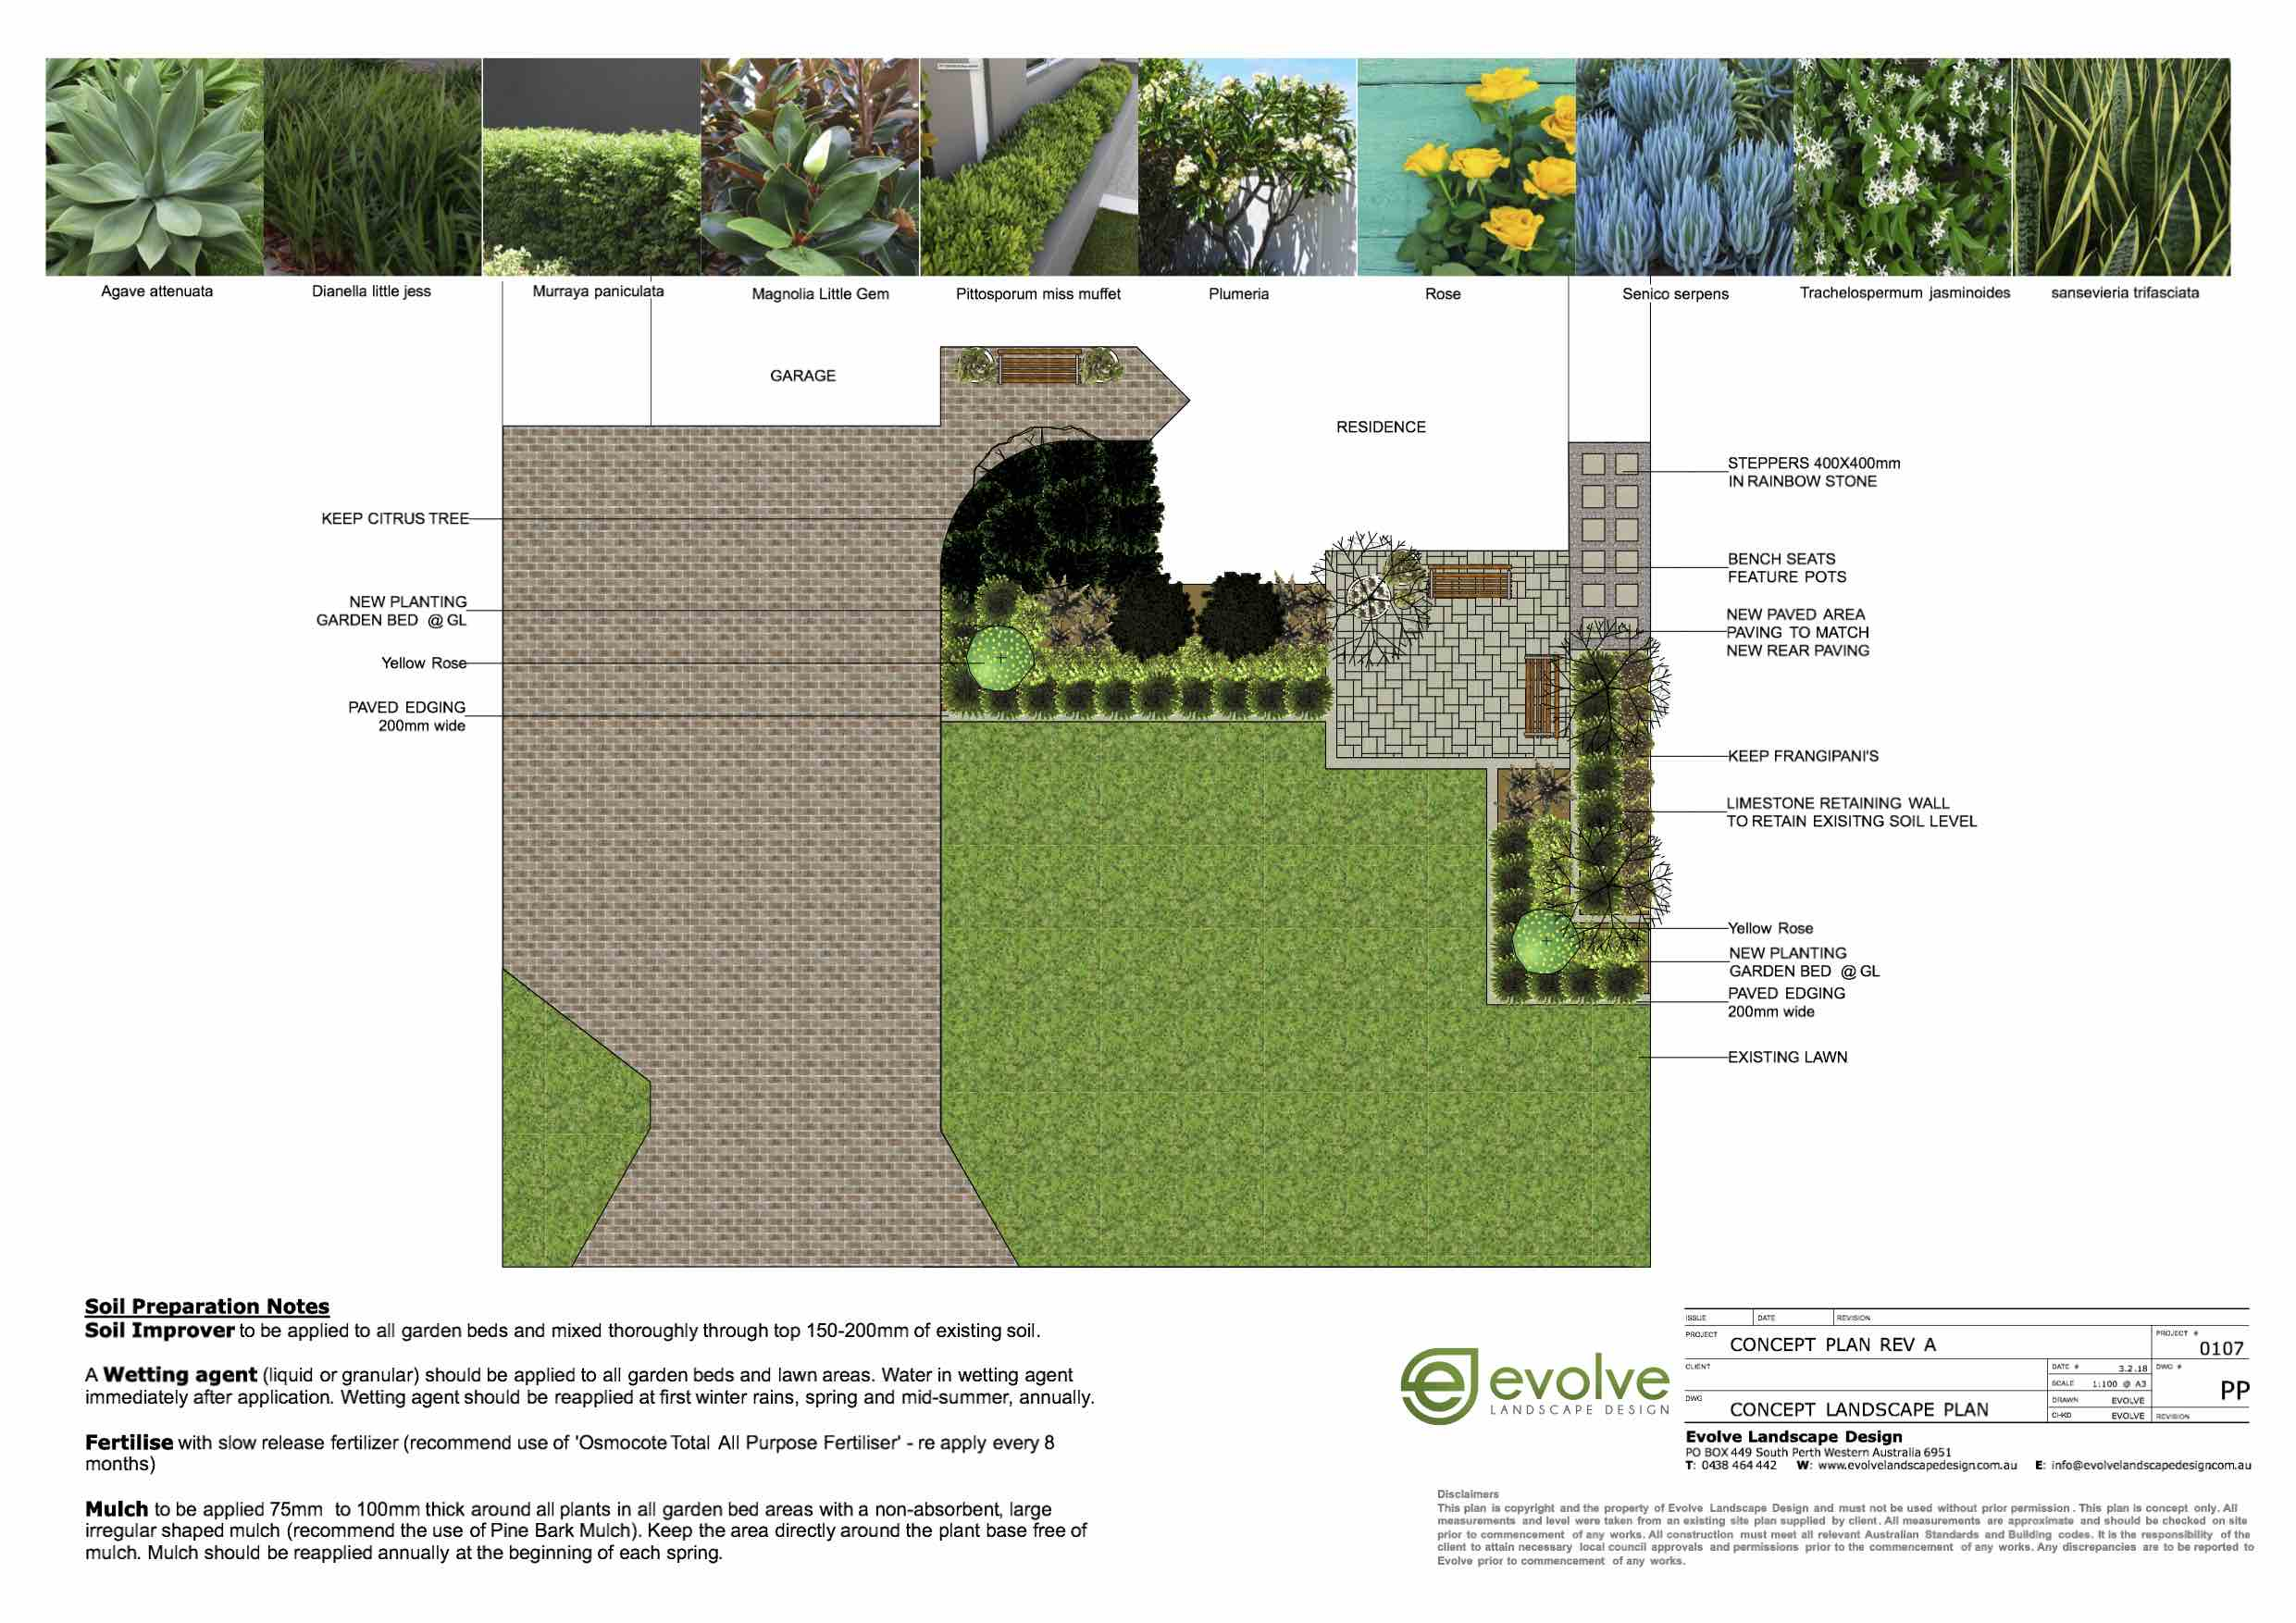 2d Landscape Design prices $350-$1,050 - Ideal for Homeowners looking for a Landscape Design for DIY Project or Planning on receiving multiple quotes from landscapers.includes :Onsite design consultation (approx. 30 - 60 min)Scaled Landscape plan (2d plan view)1 set of Design refinementsFinal Landscape layout (2d plan view)Plant suggestionsAll designs quoted as per design requirements. Please note site plans need to be supplied otherwise an hourly rate will be charged to measure the site. (price quoted onsite)